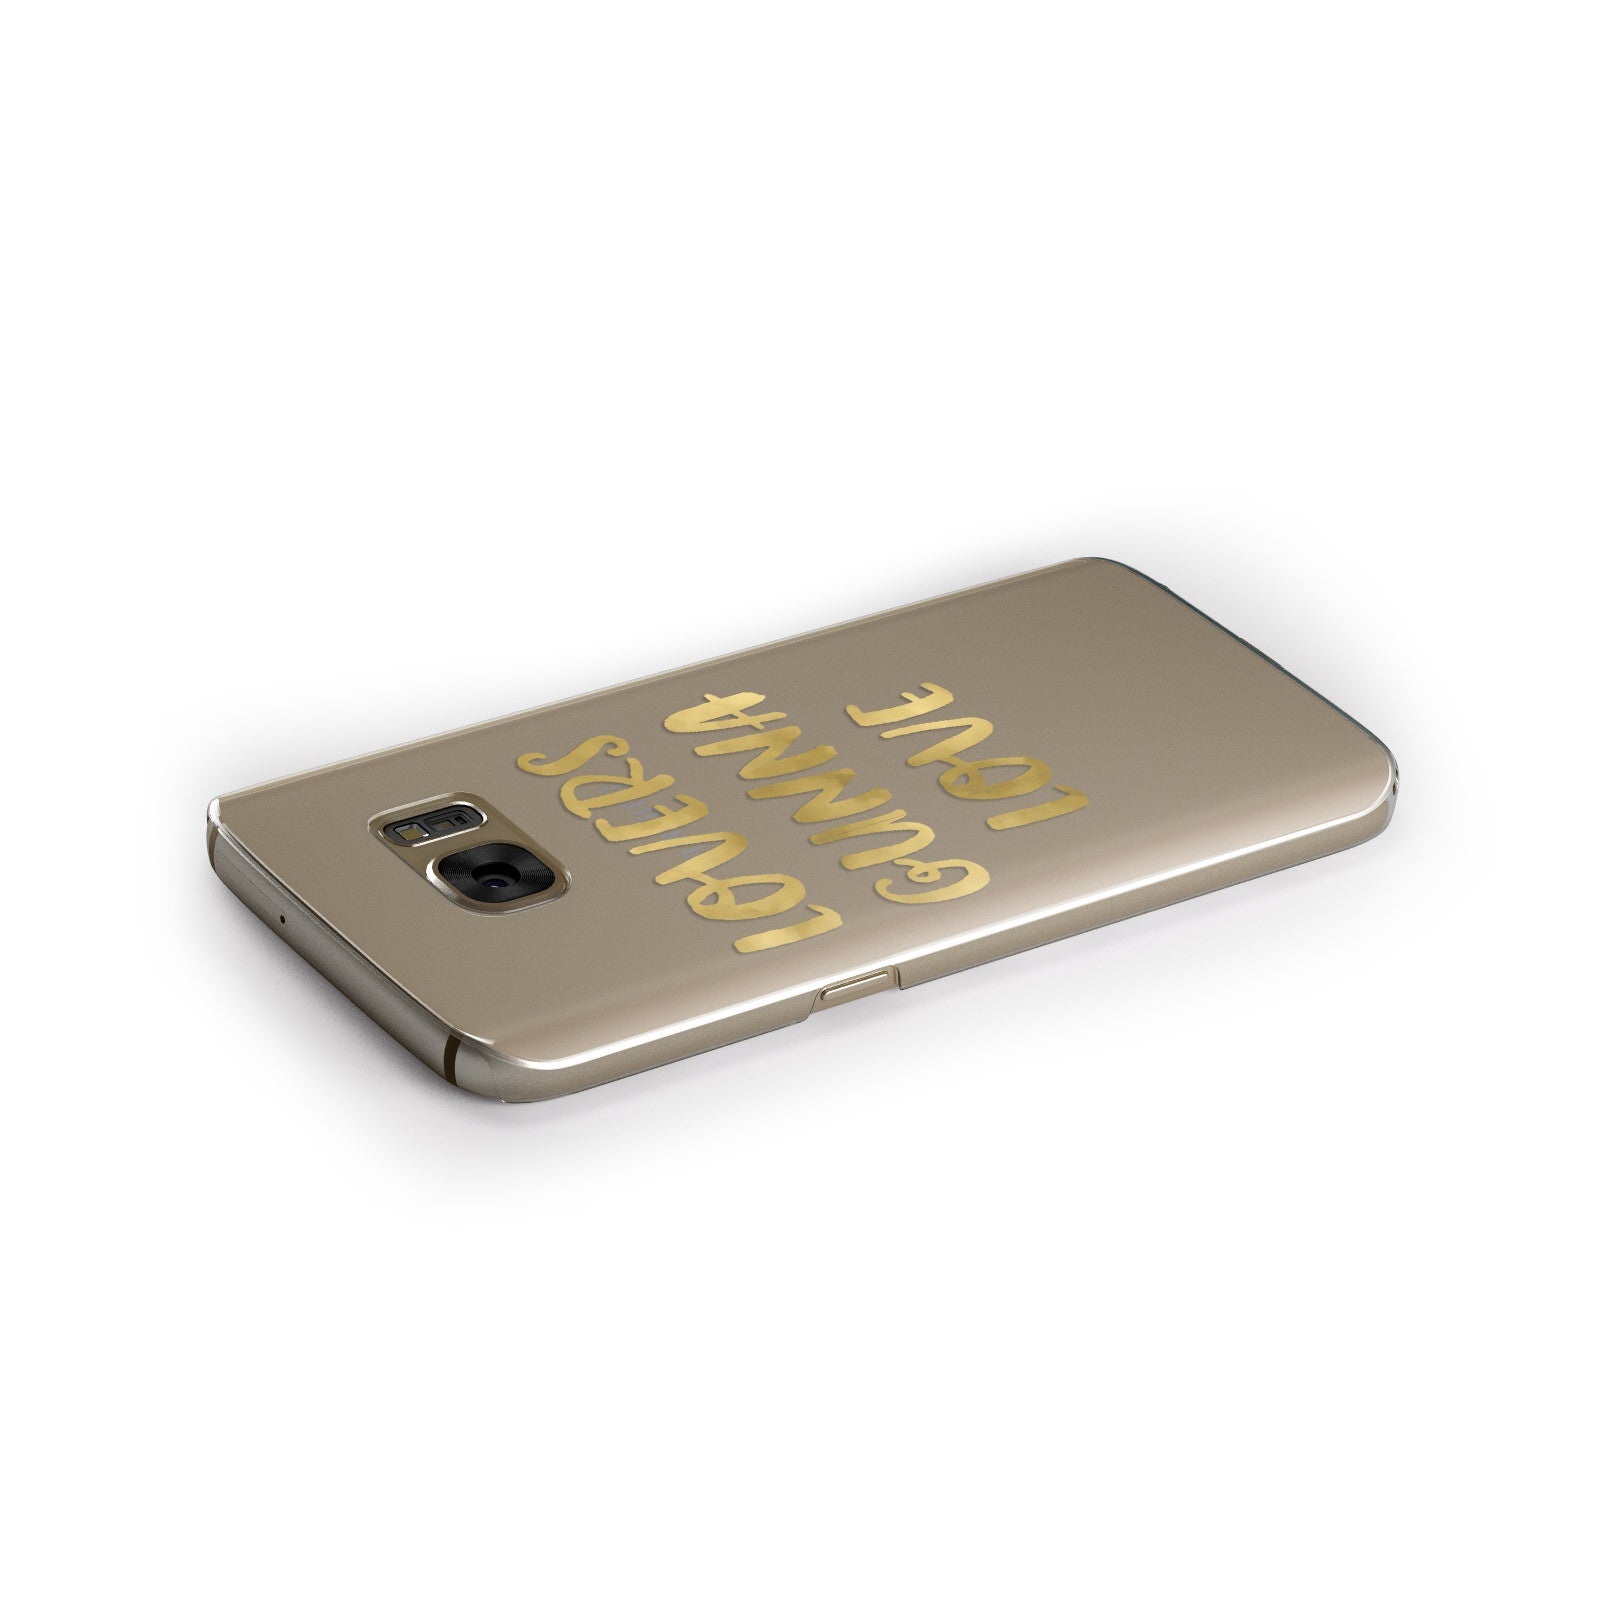 Lovers Gunna Love Real Gold Foil Samsung Galaxy Case Side Close Up